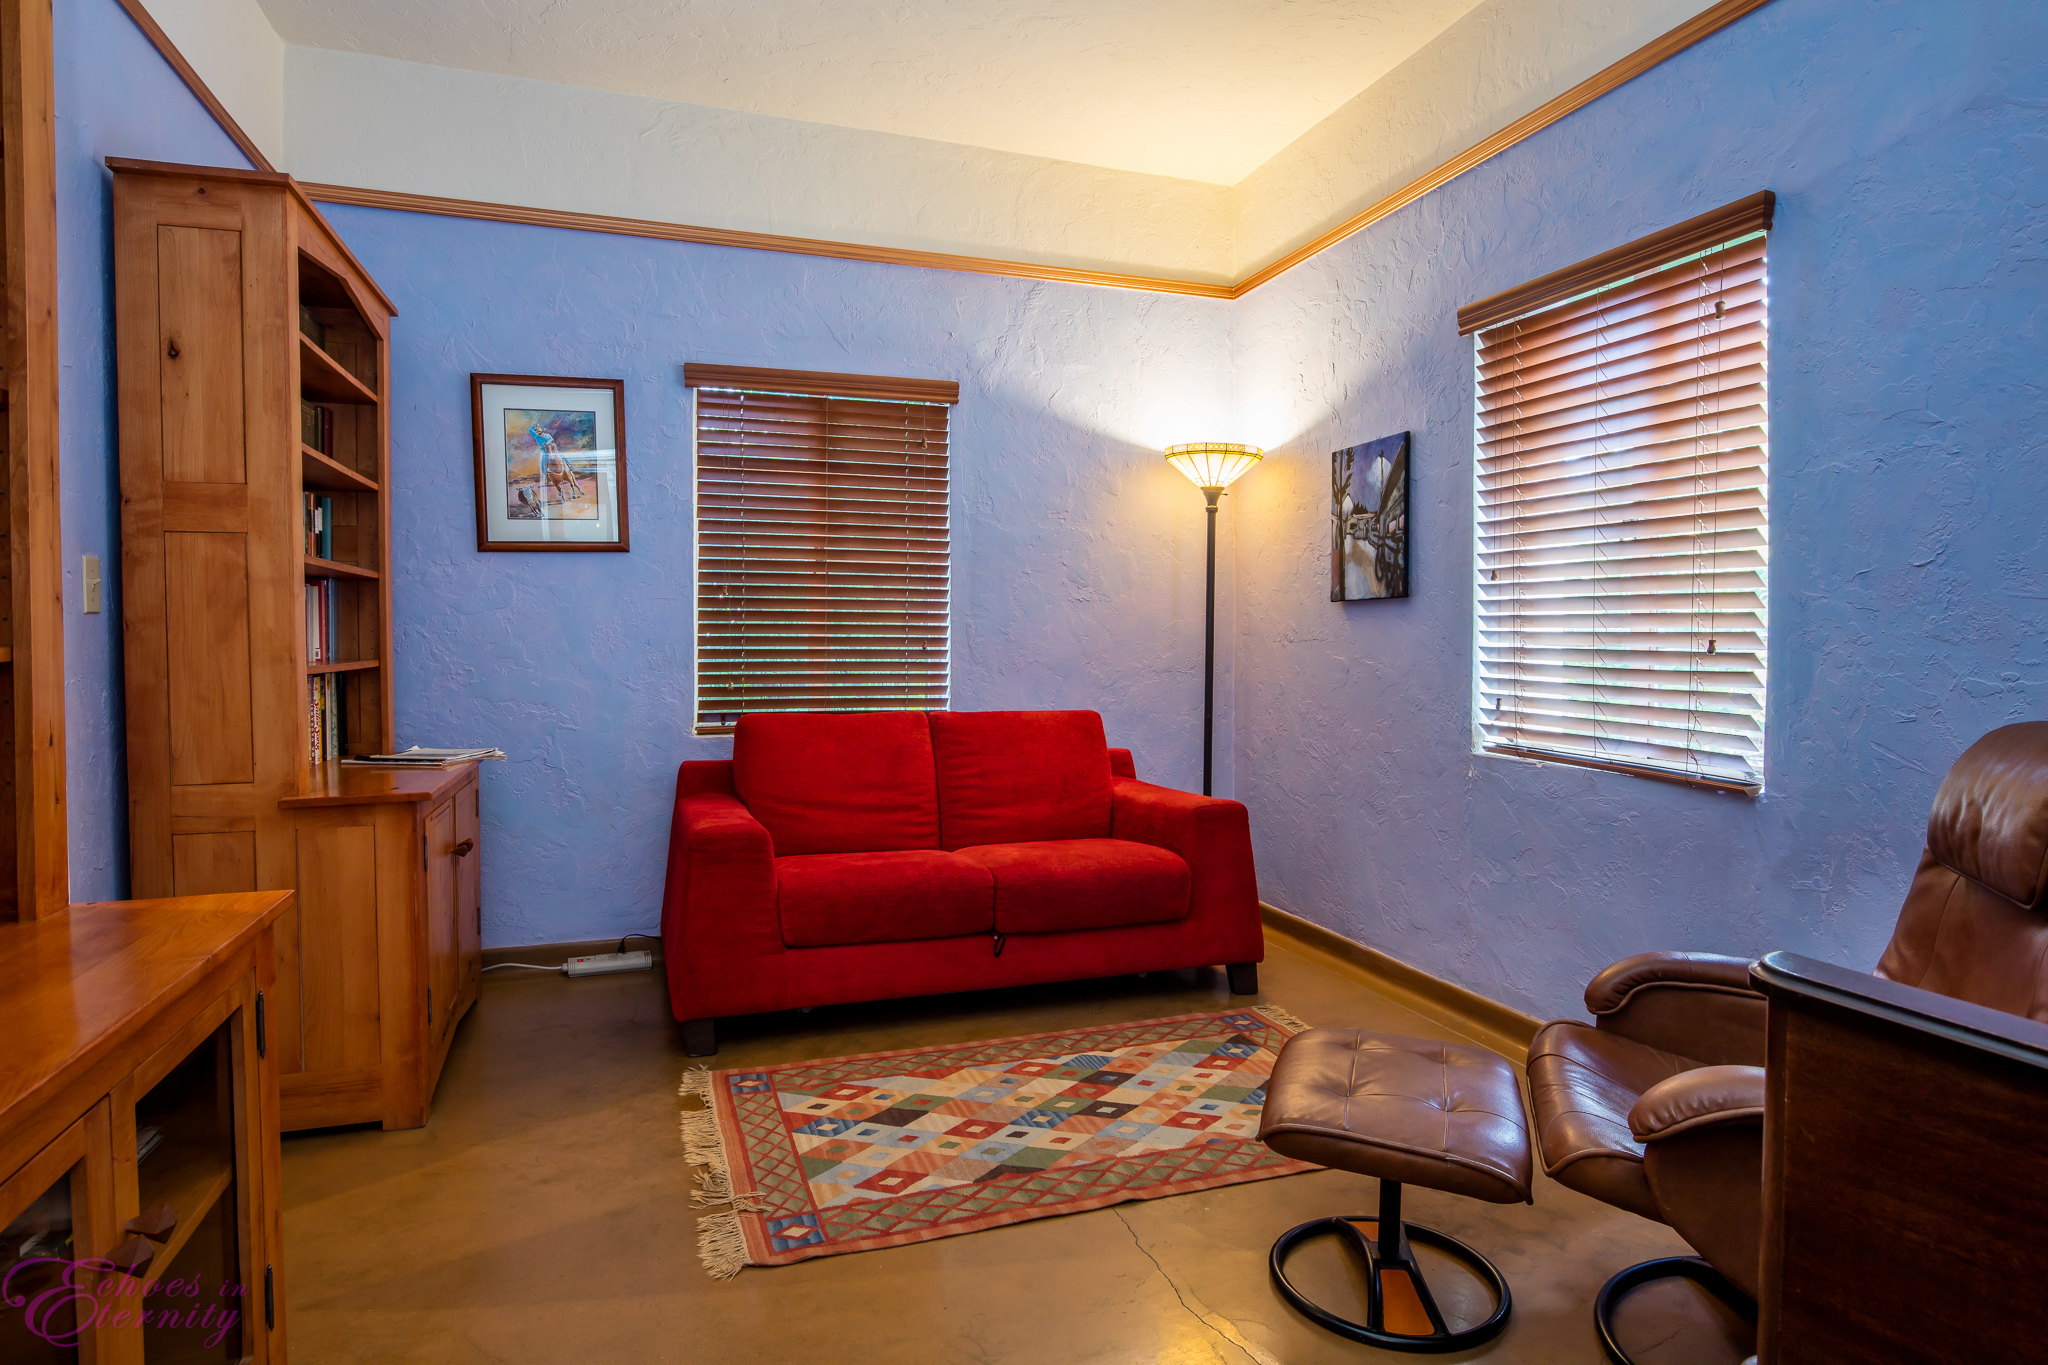 Professional Photos Tucson Arizona Rental Real Estate Photography Airbnb VRBO 07.jpg